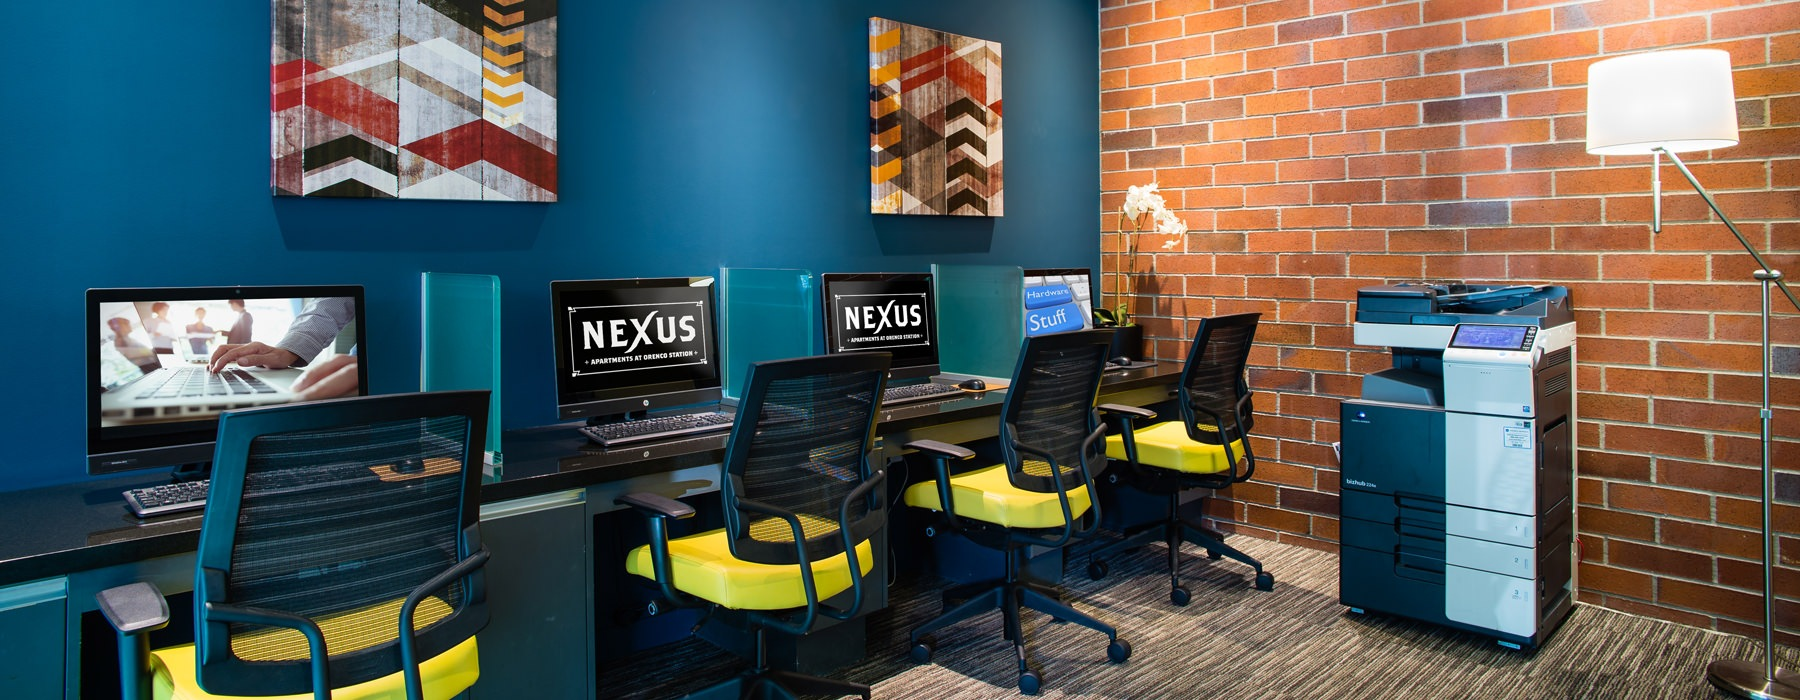 Business Center with computer stations against a wall and large printer